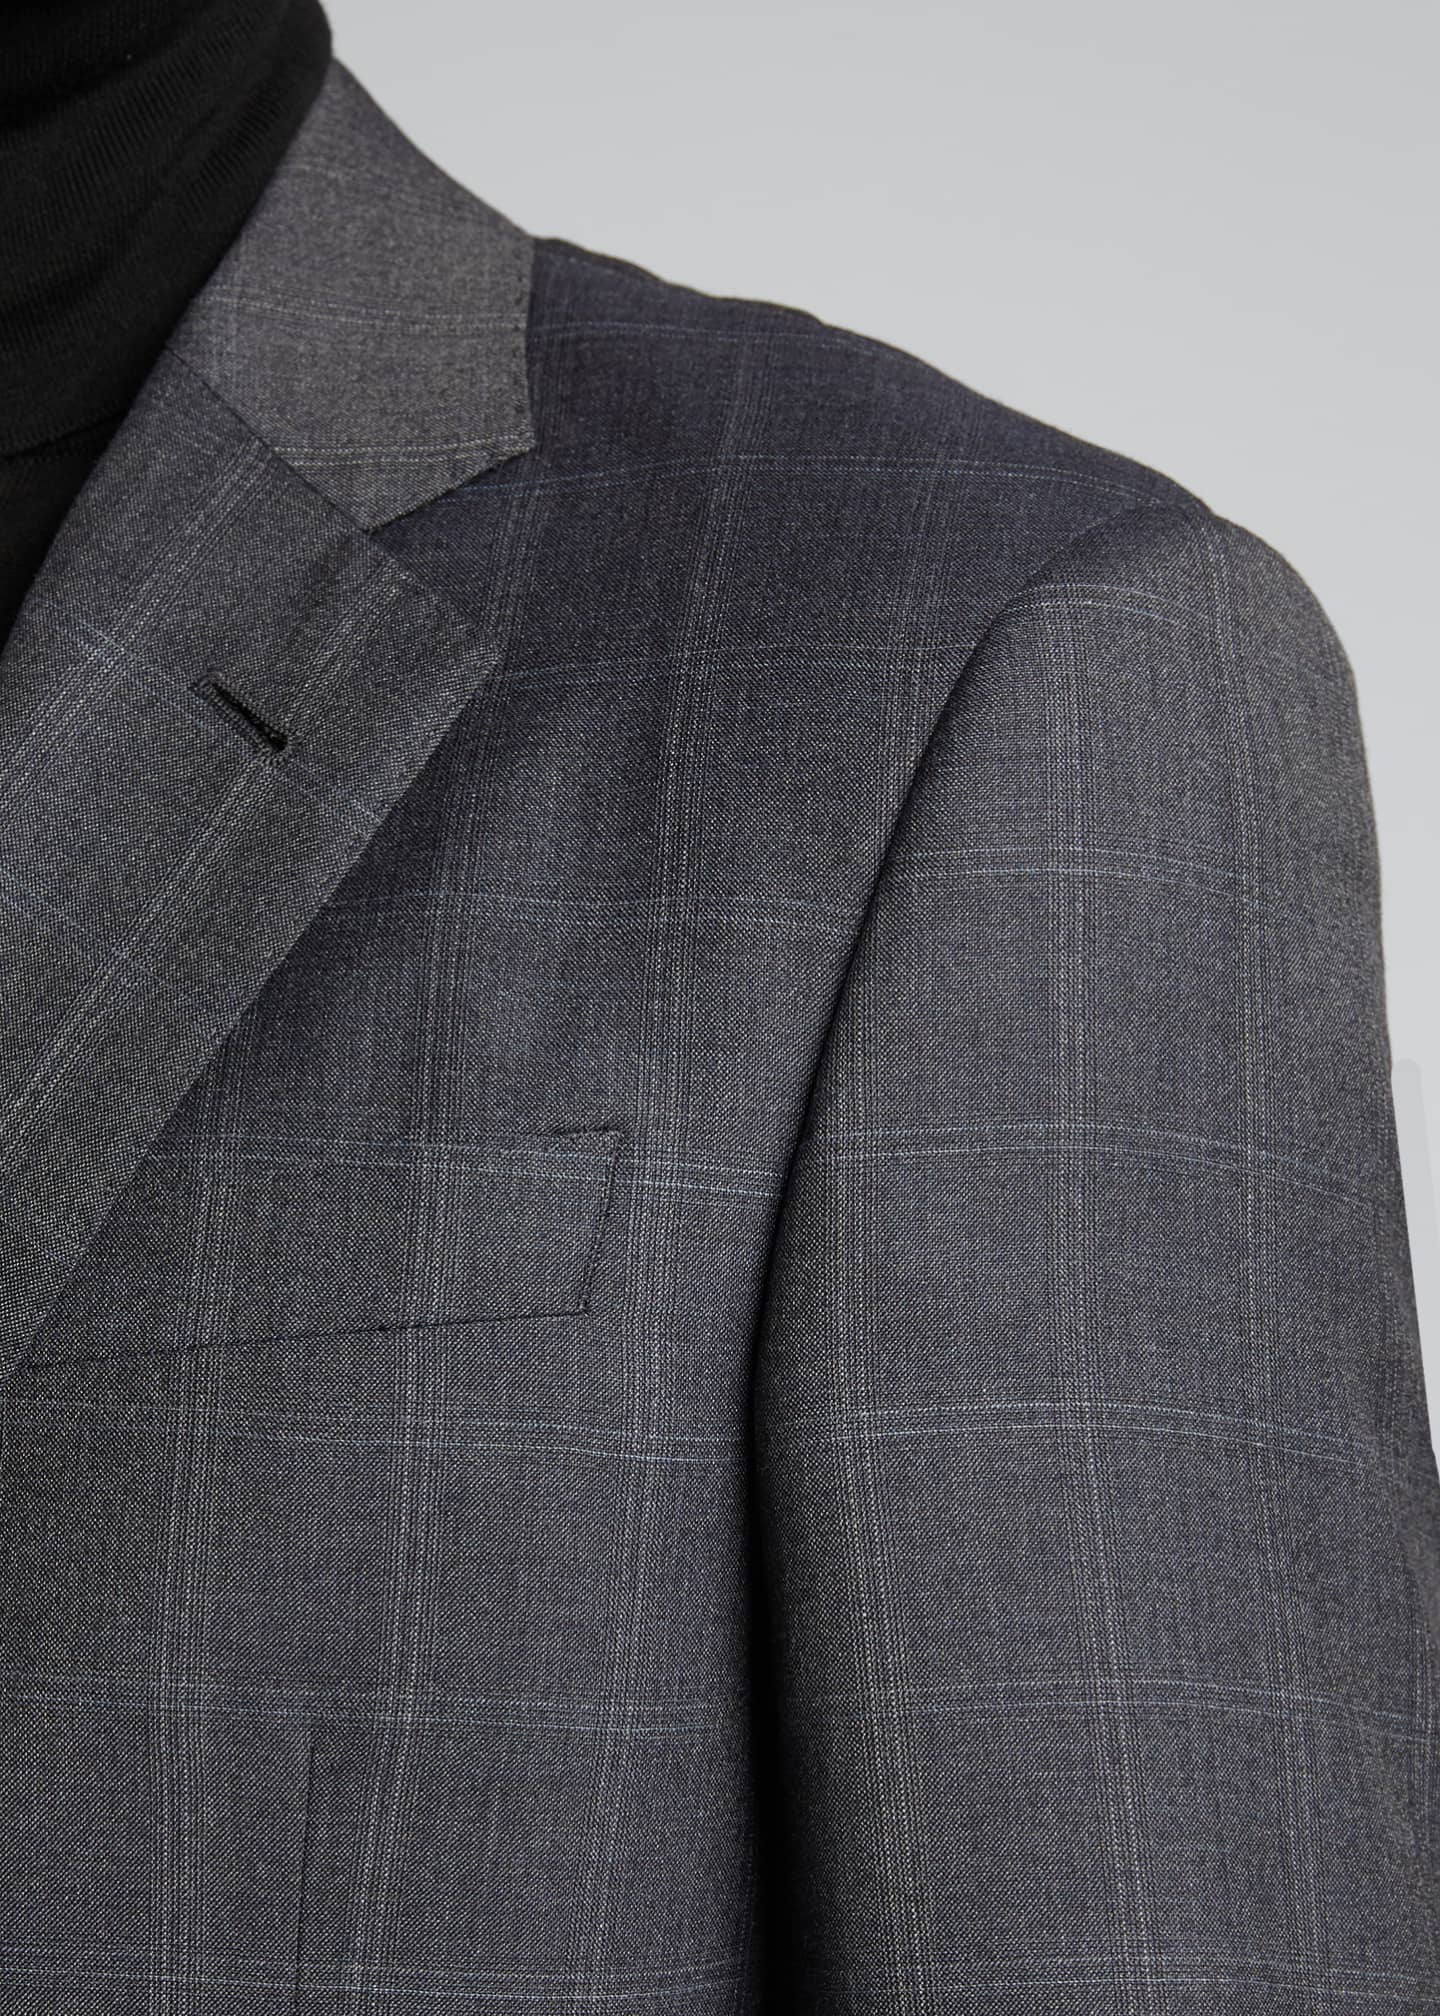 Image 4 of 5: Men's Windowpane Wool Two-Piece Suit